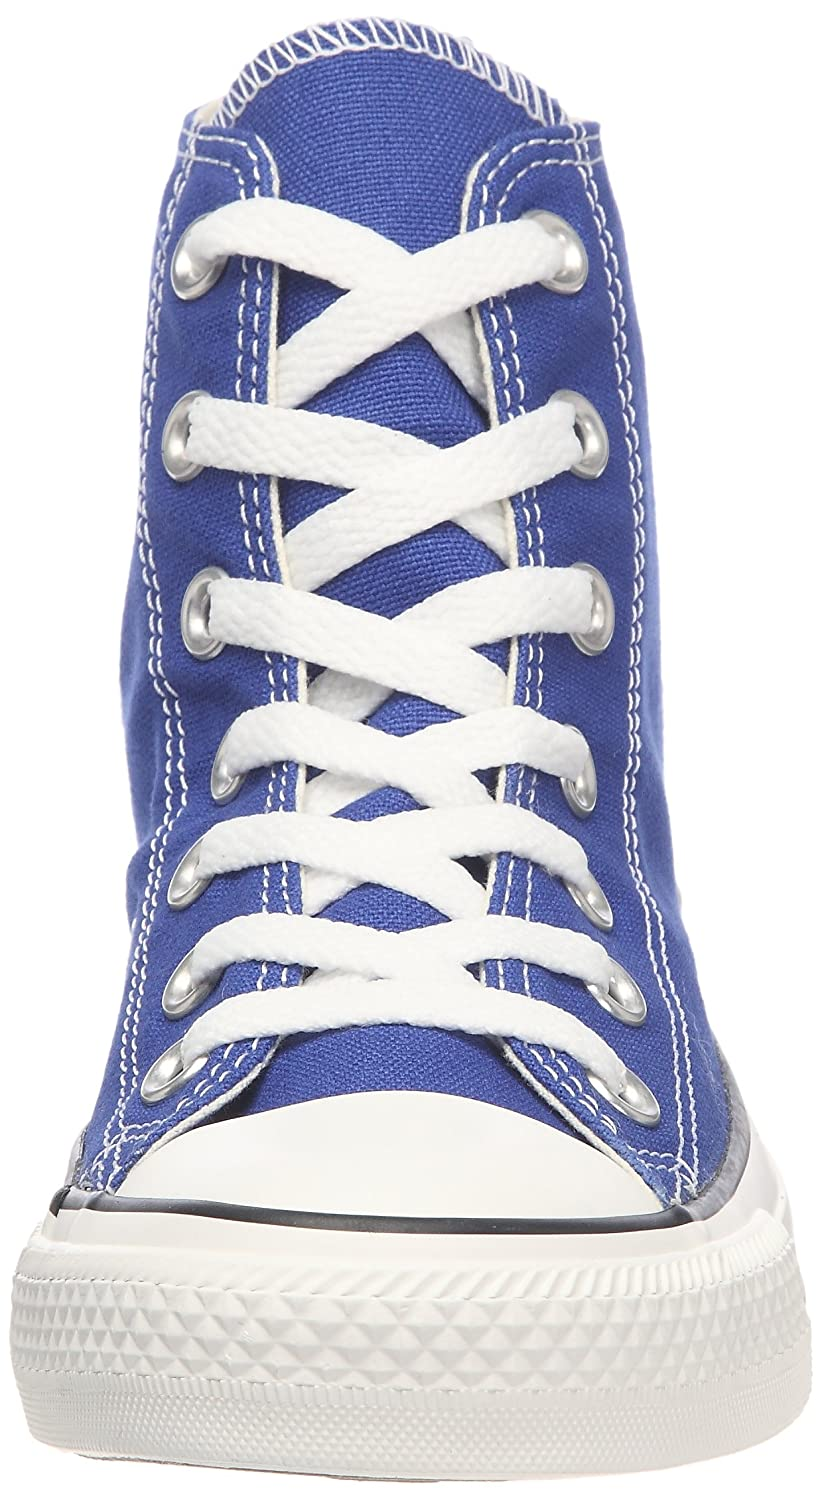 new product 2c52c 9f830 ... Converse Chuck Taylor All Star Core Hi B00IRXCH3A B00IRXCH3A B00IRXCH3A  15 B(M) US ...